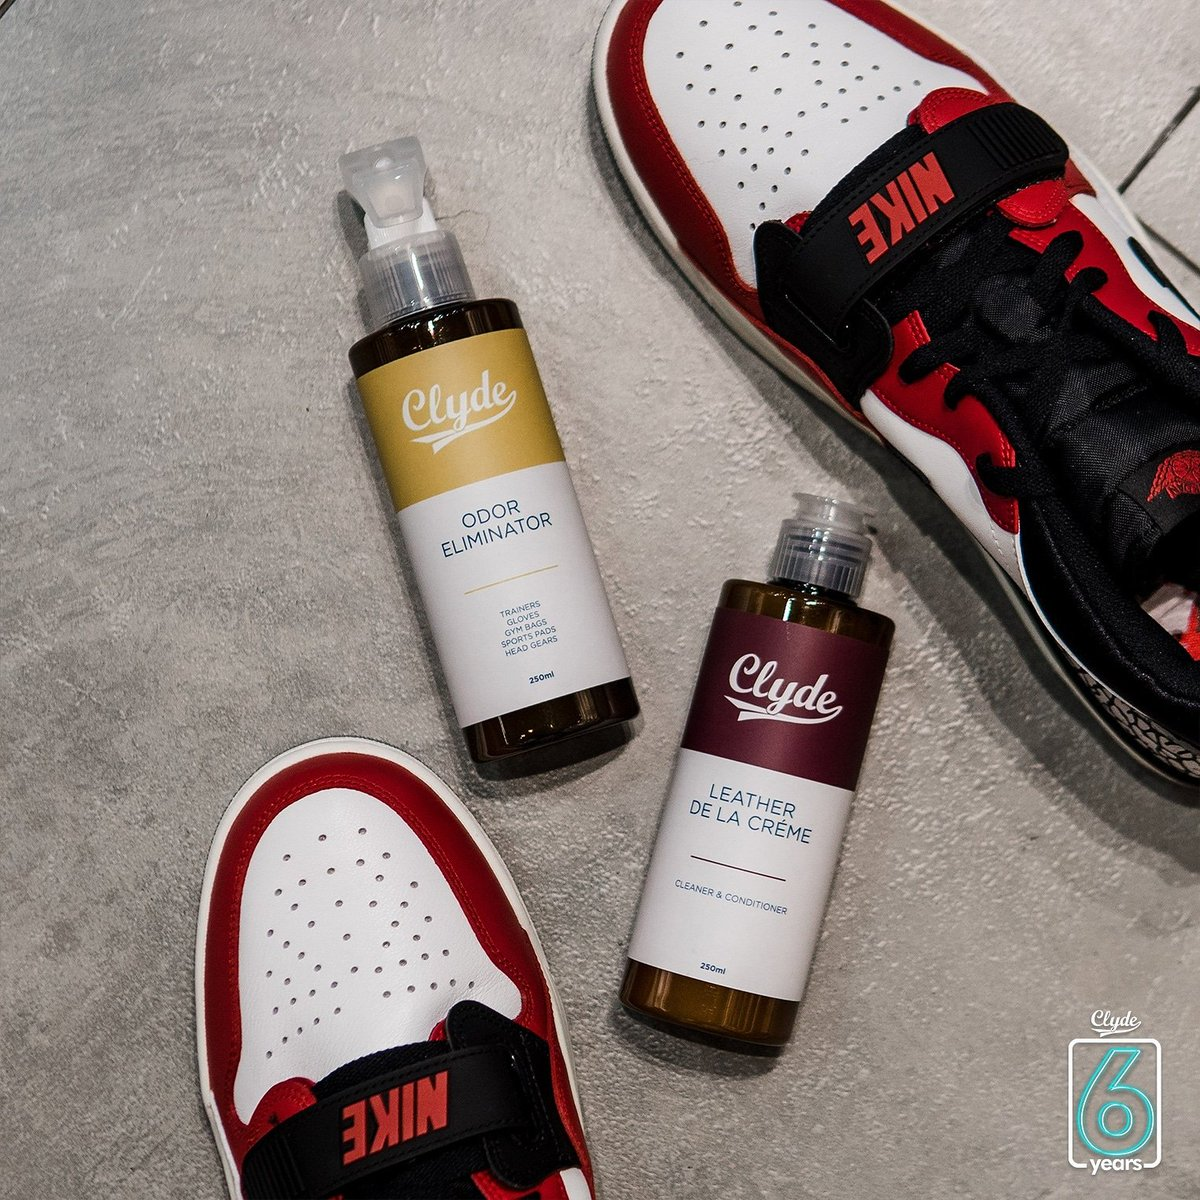 test Twitter Media - Cleans, conditions and deodorizes your leather sneakers. #TimeToClyde #LetsClyde #ItWorks https://t.co/qCf51YE8Ii